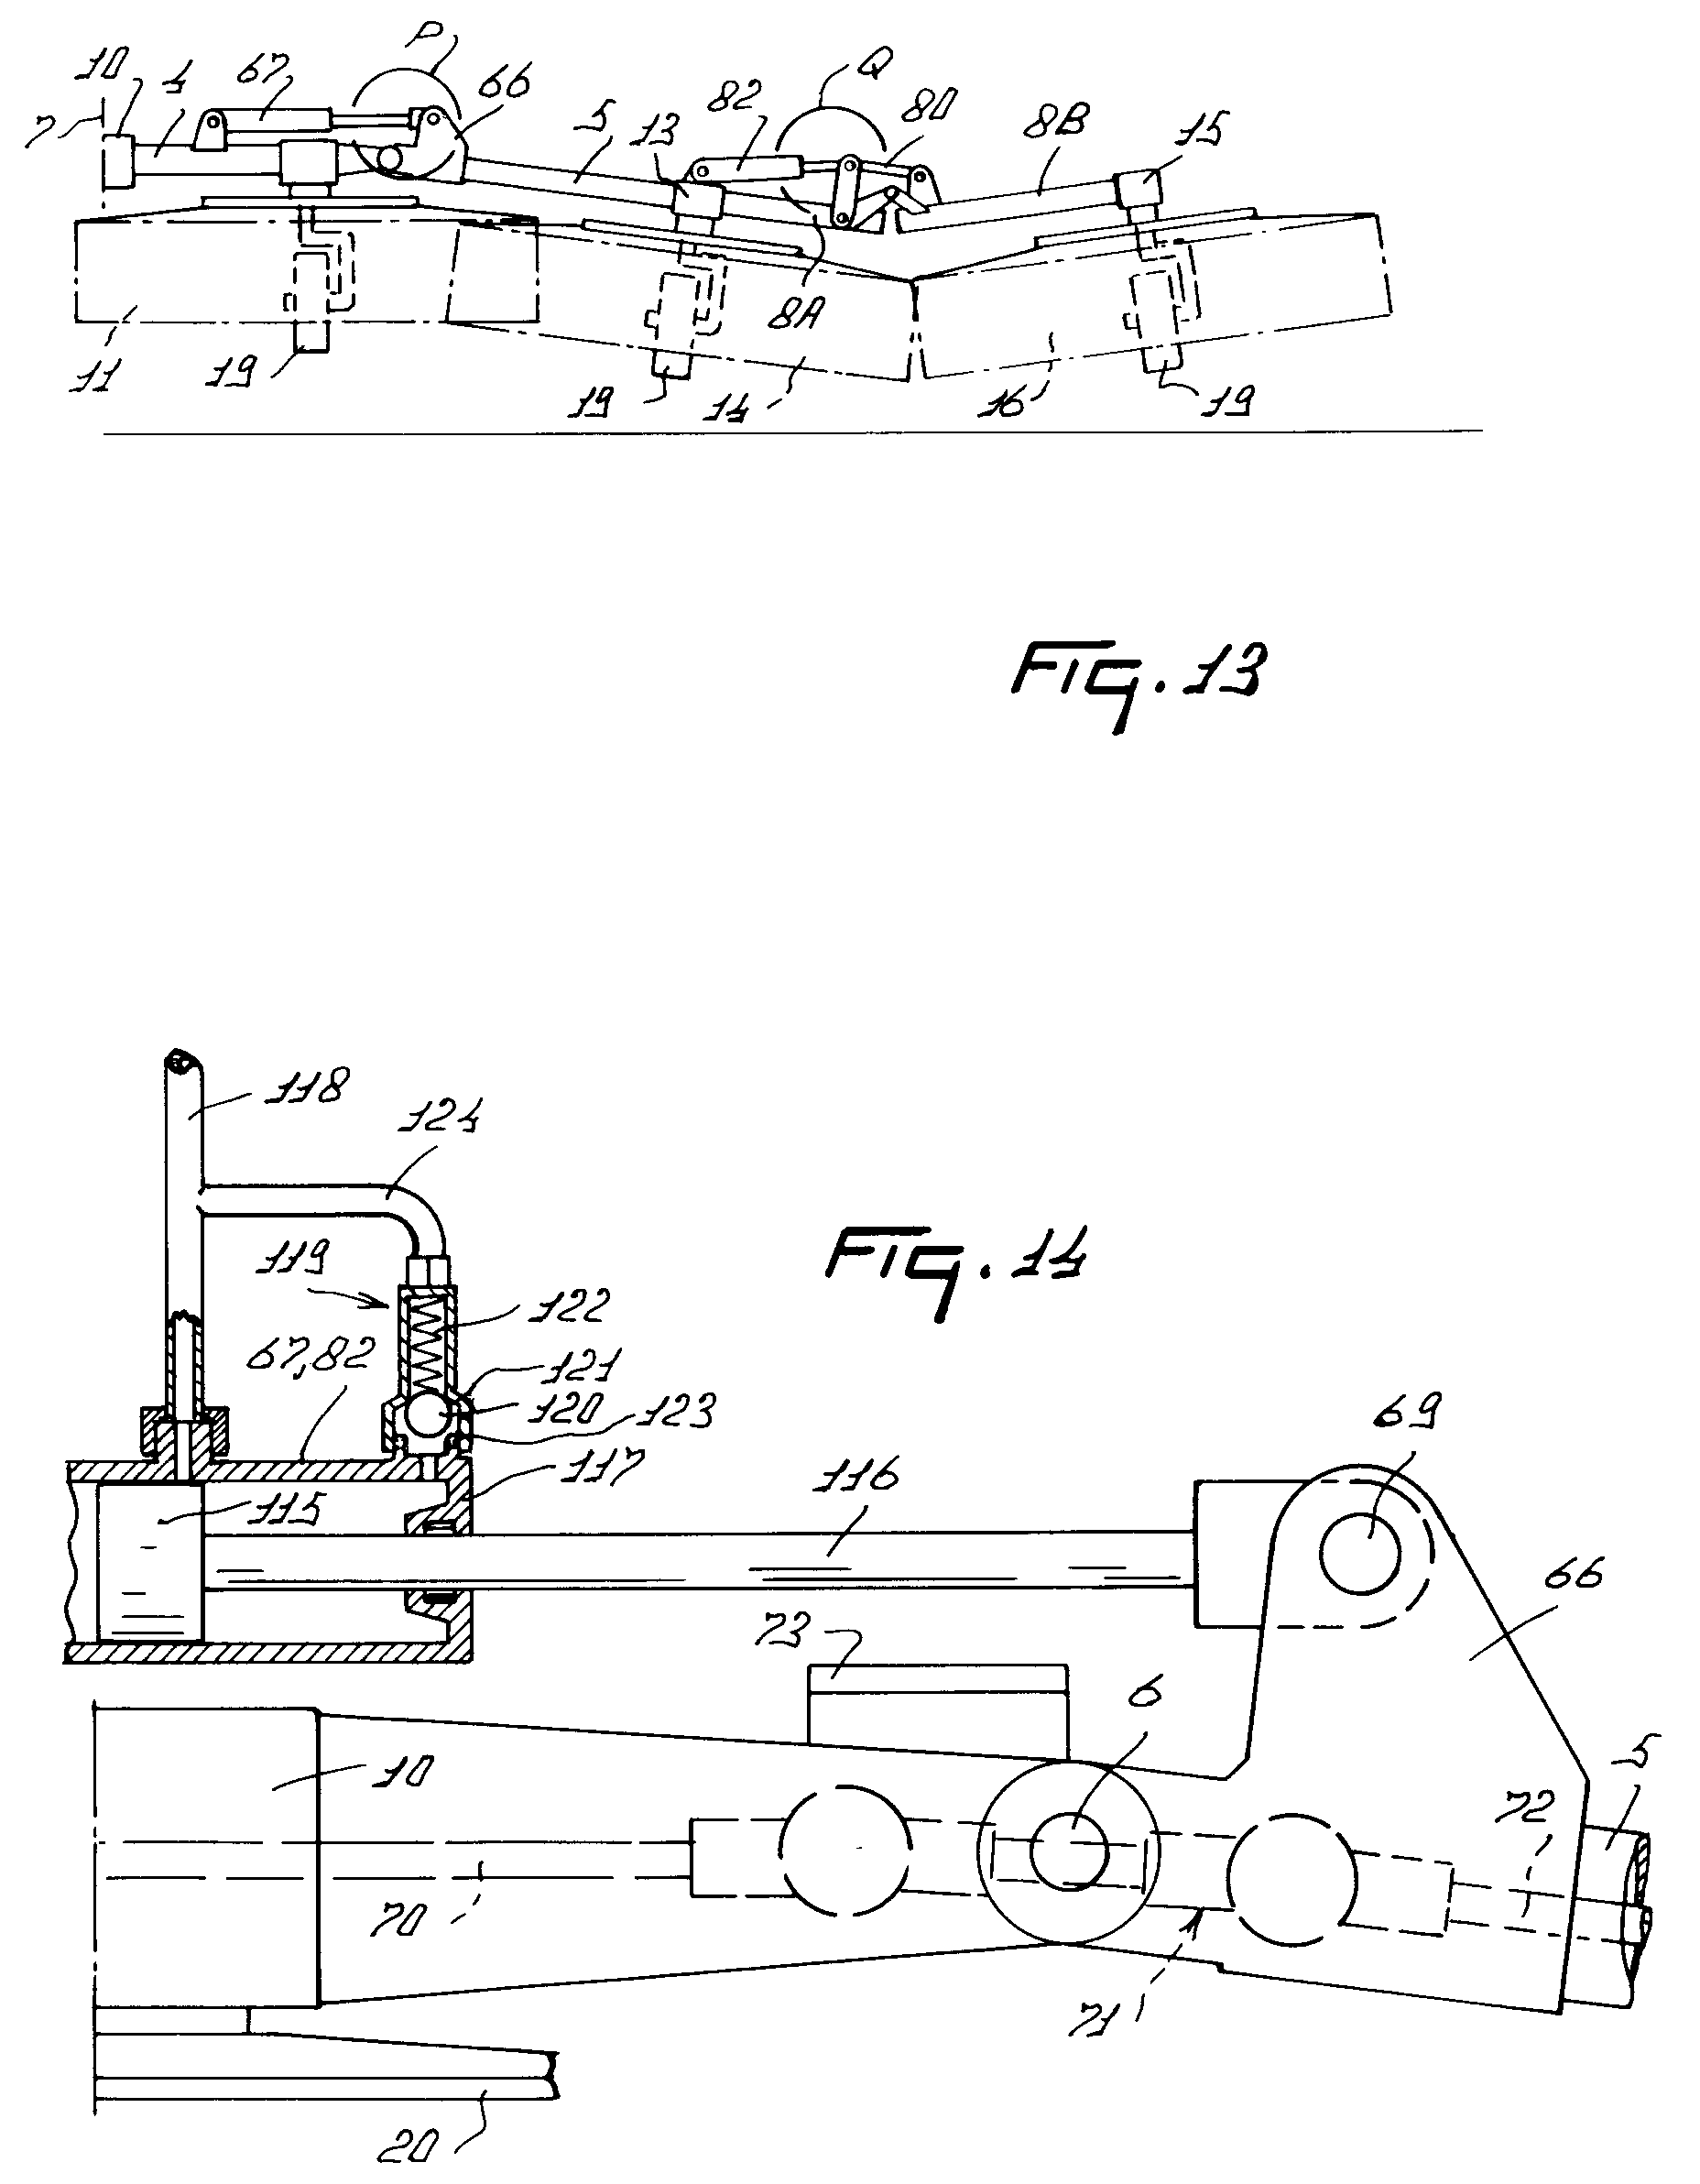 Kuhn Disc Mower Parts Gmd 500 Diagram Within Diagram